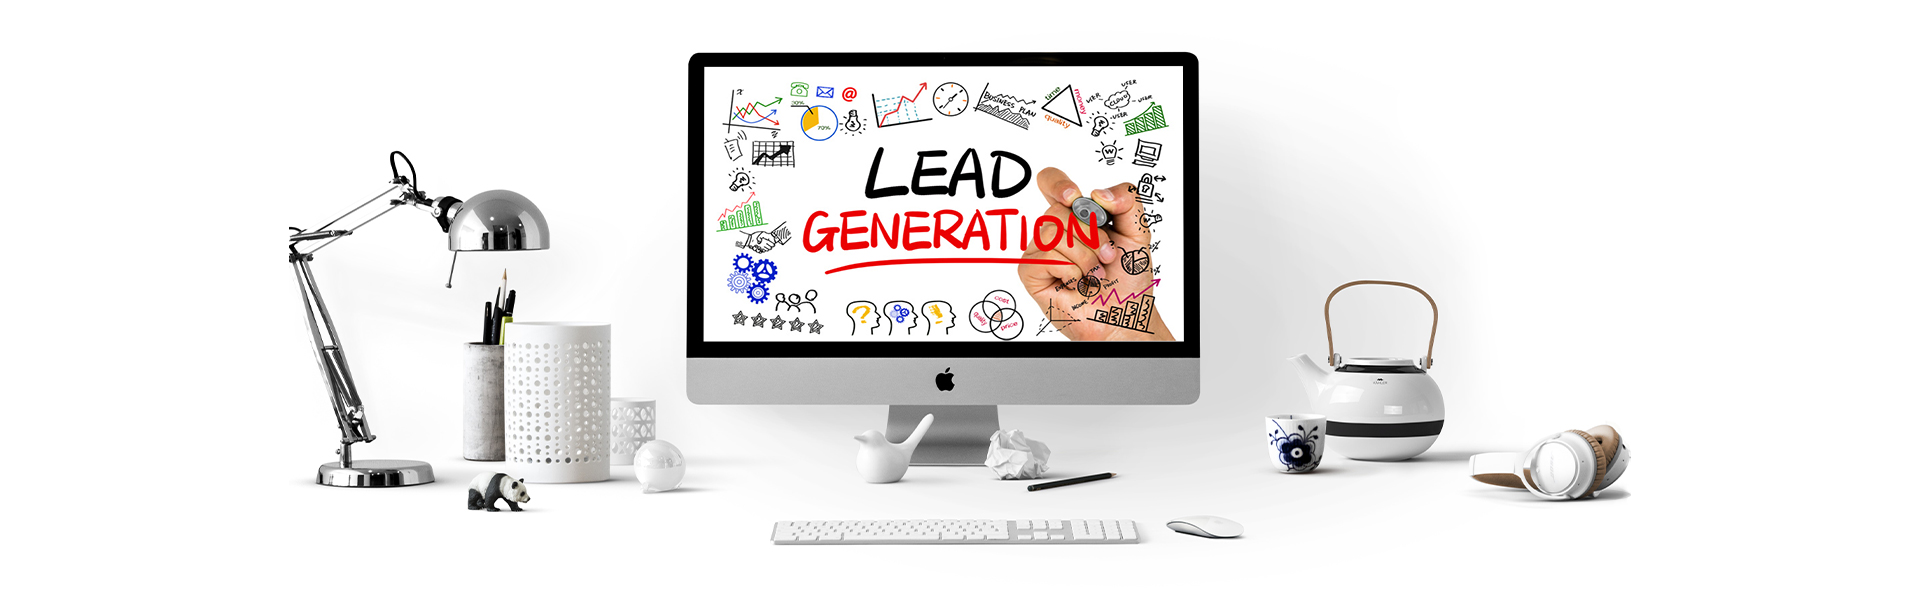 Born Intelligence, Lead Generation, Lead Gen, Why you need lead generation, The importance of lead generation, leads, Lead generation marketing, lead gen strategy, Lead generation tools, lead generation techniques, how to get more leads, how to get new clients, Marketing, digital marketing, digital strategy, marketing strategy,